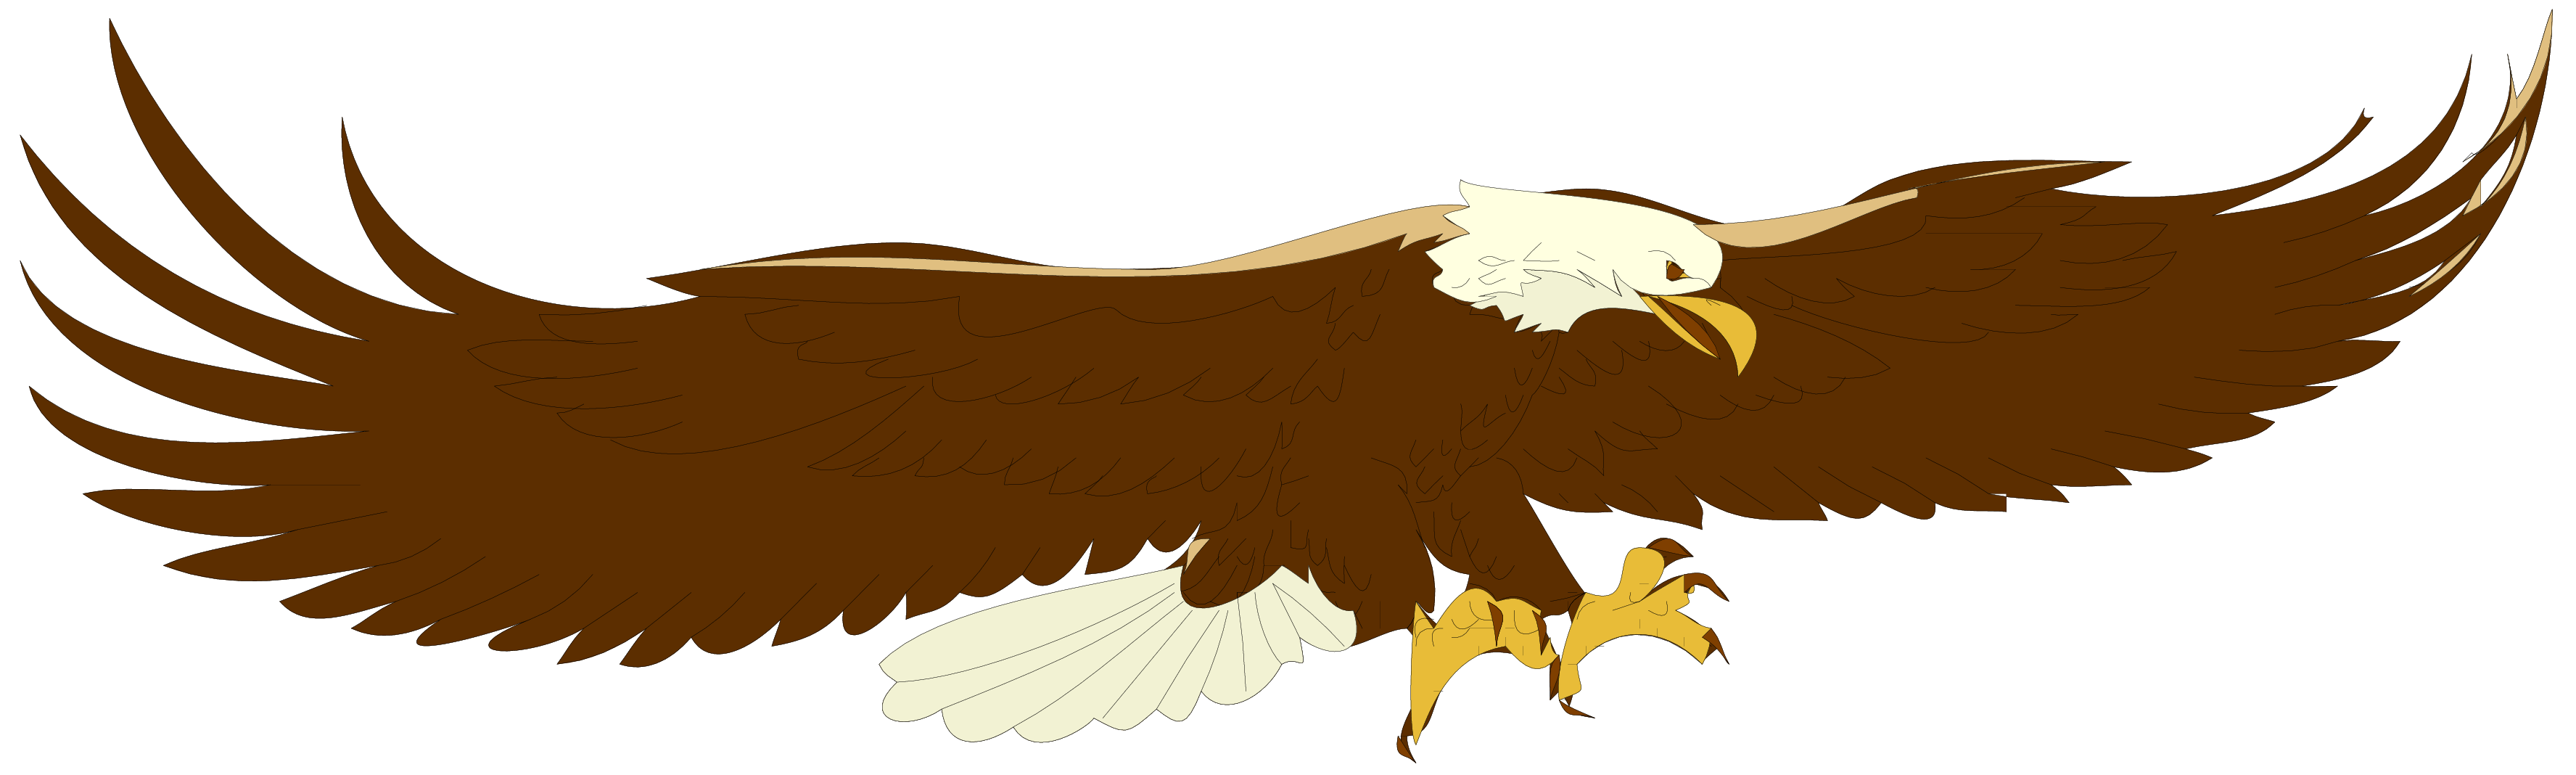 Eagle clipart #2, Download drawings